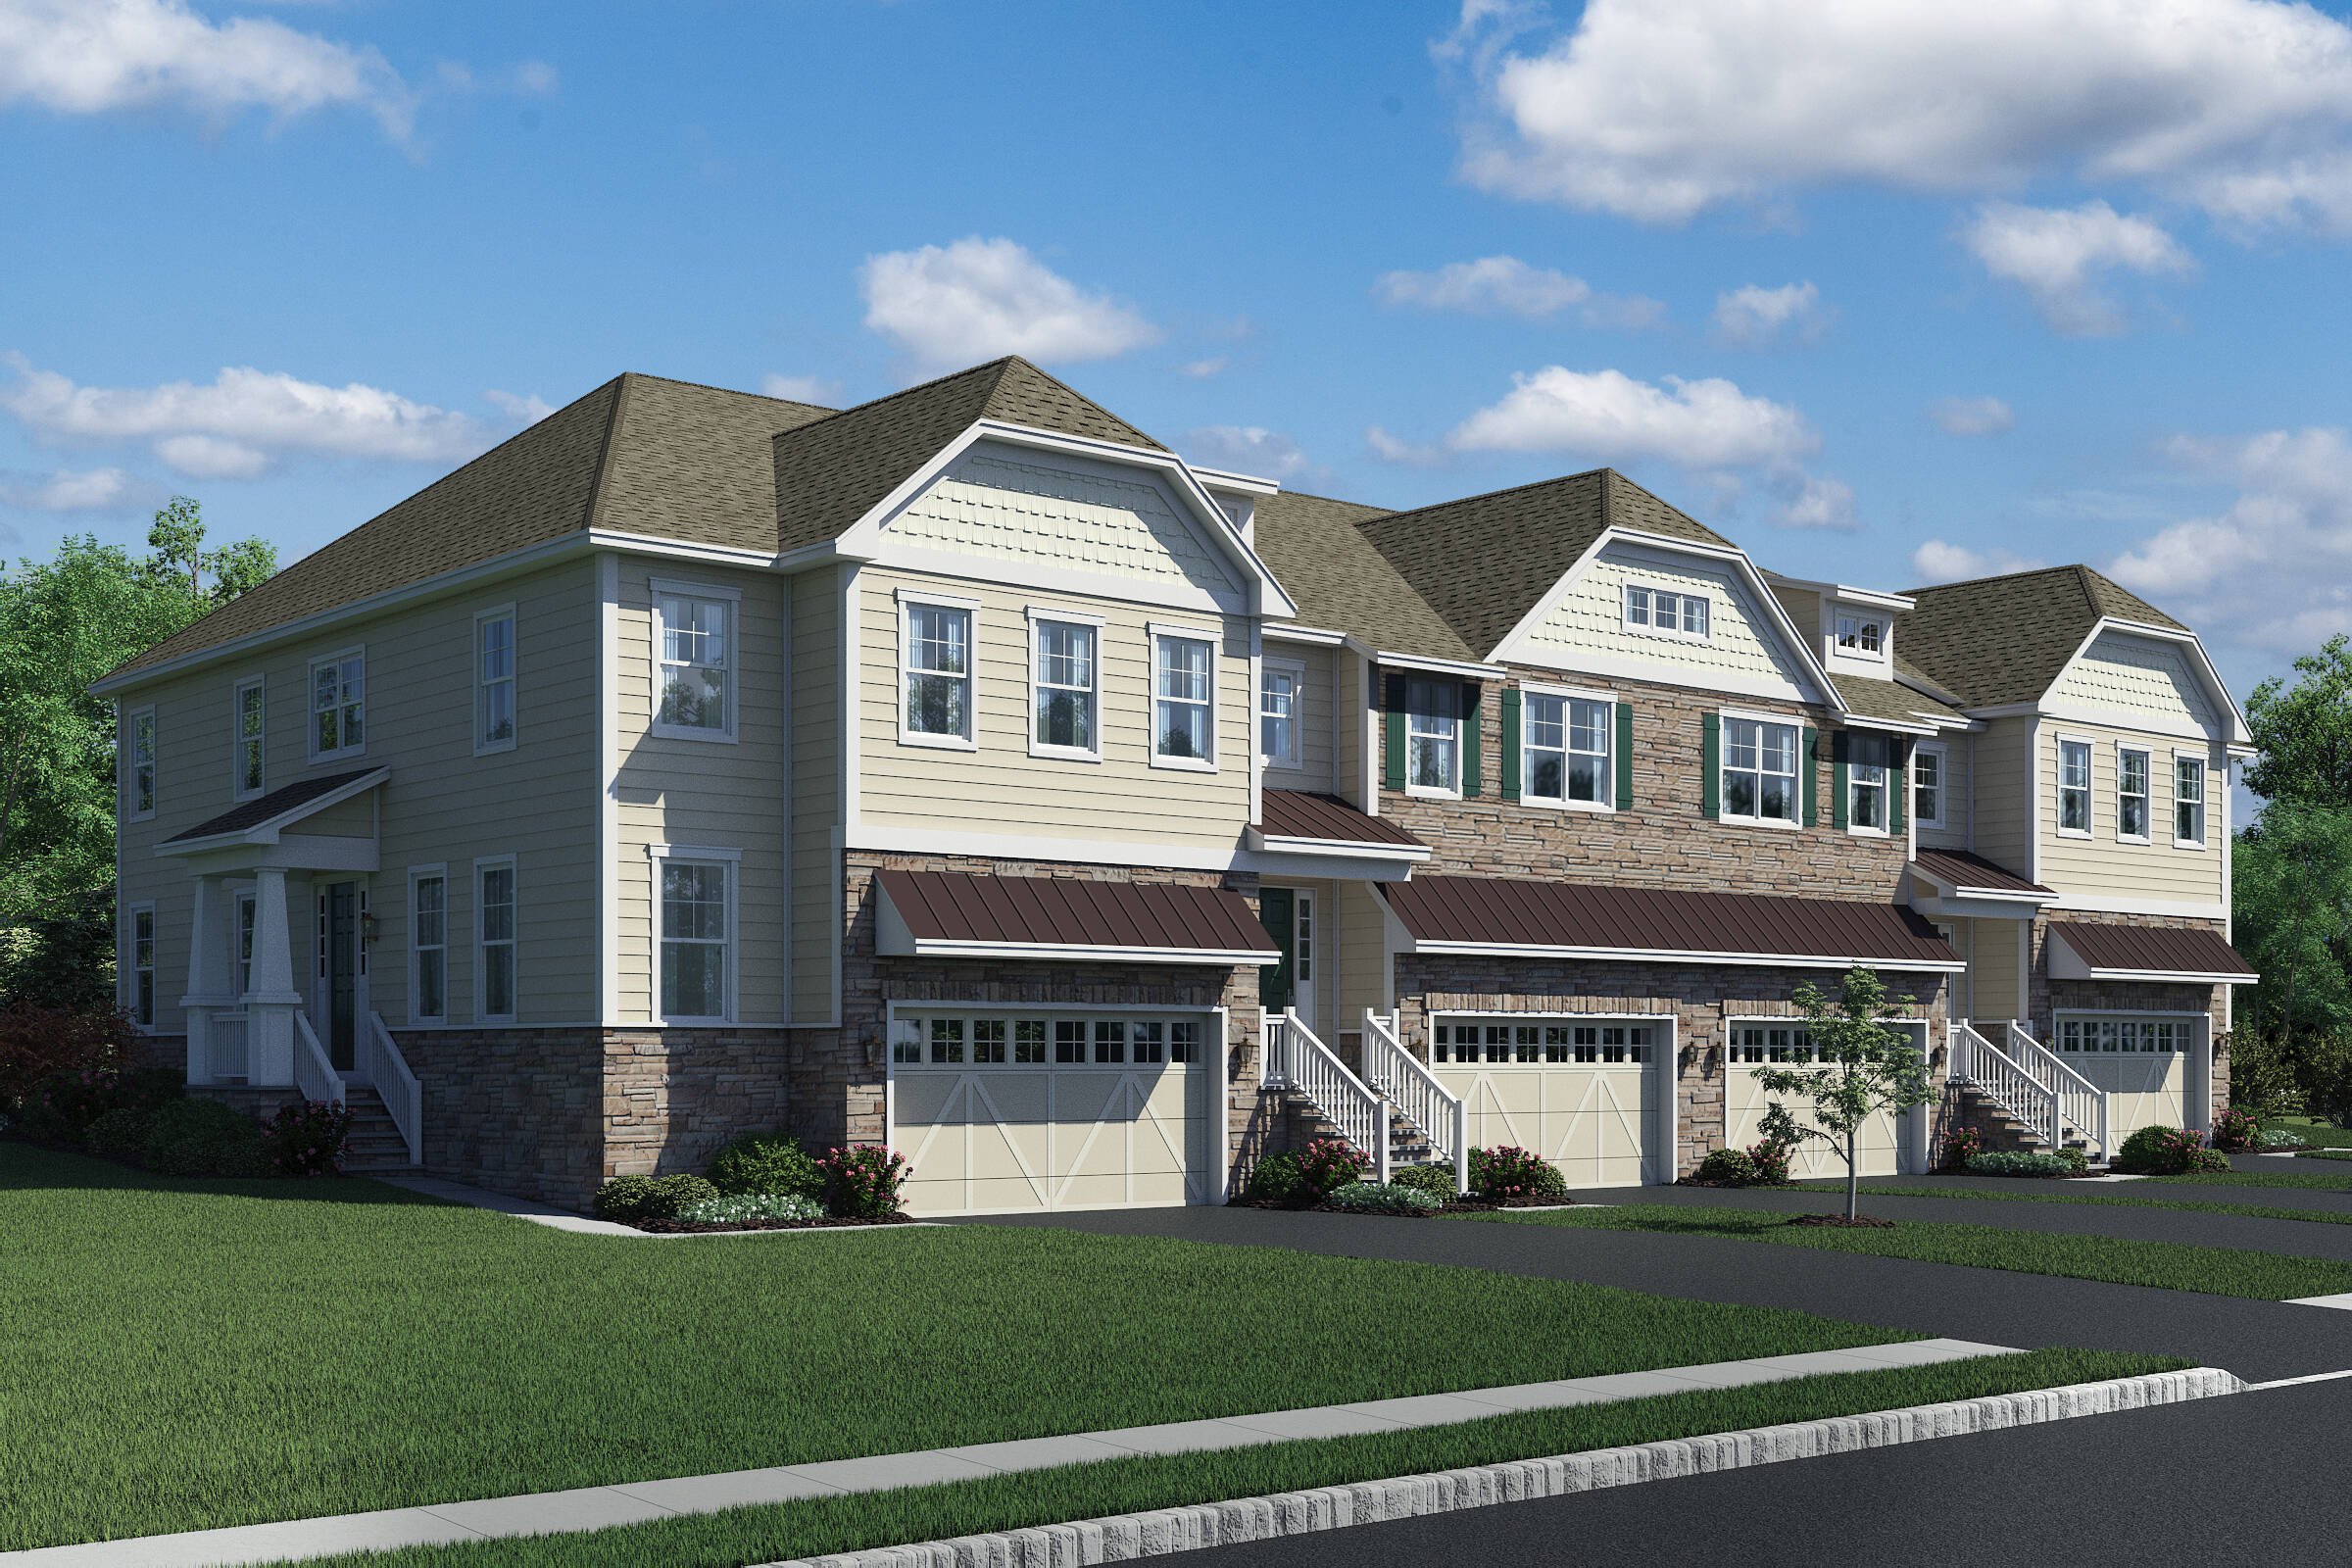 28 Foot Product New Townhomes Lincroft NJ